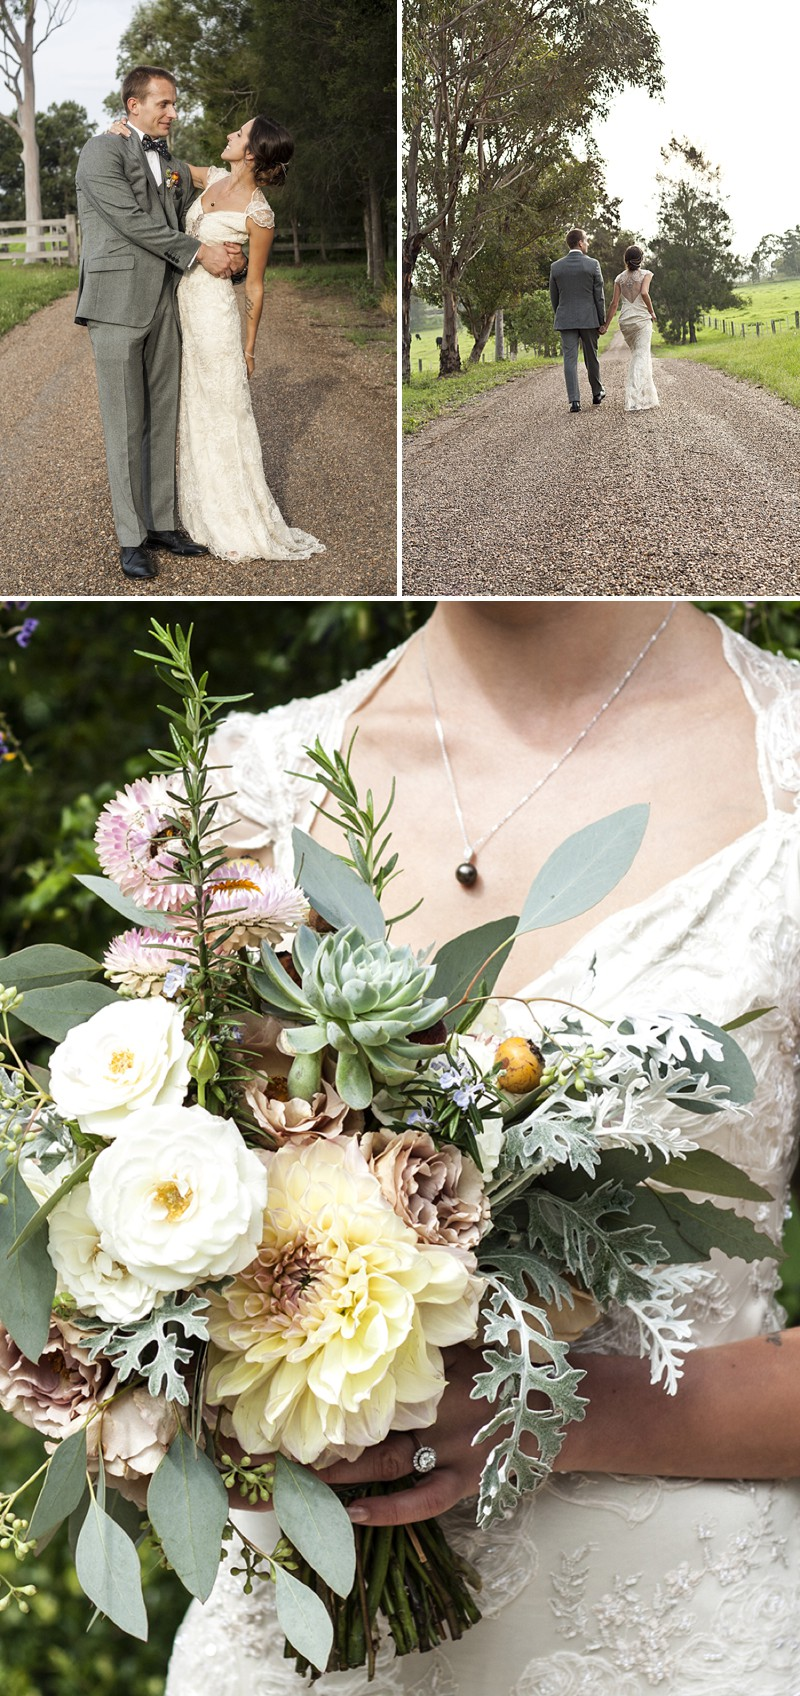 A Beautiful Australian Wedding At Mindaribba House In Hunter Valley In Australia With A Handpicked Dahlia Bouquet And A Claire Pettibone 'Mystere' Dress Photographed By Joseph Fordham._0008